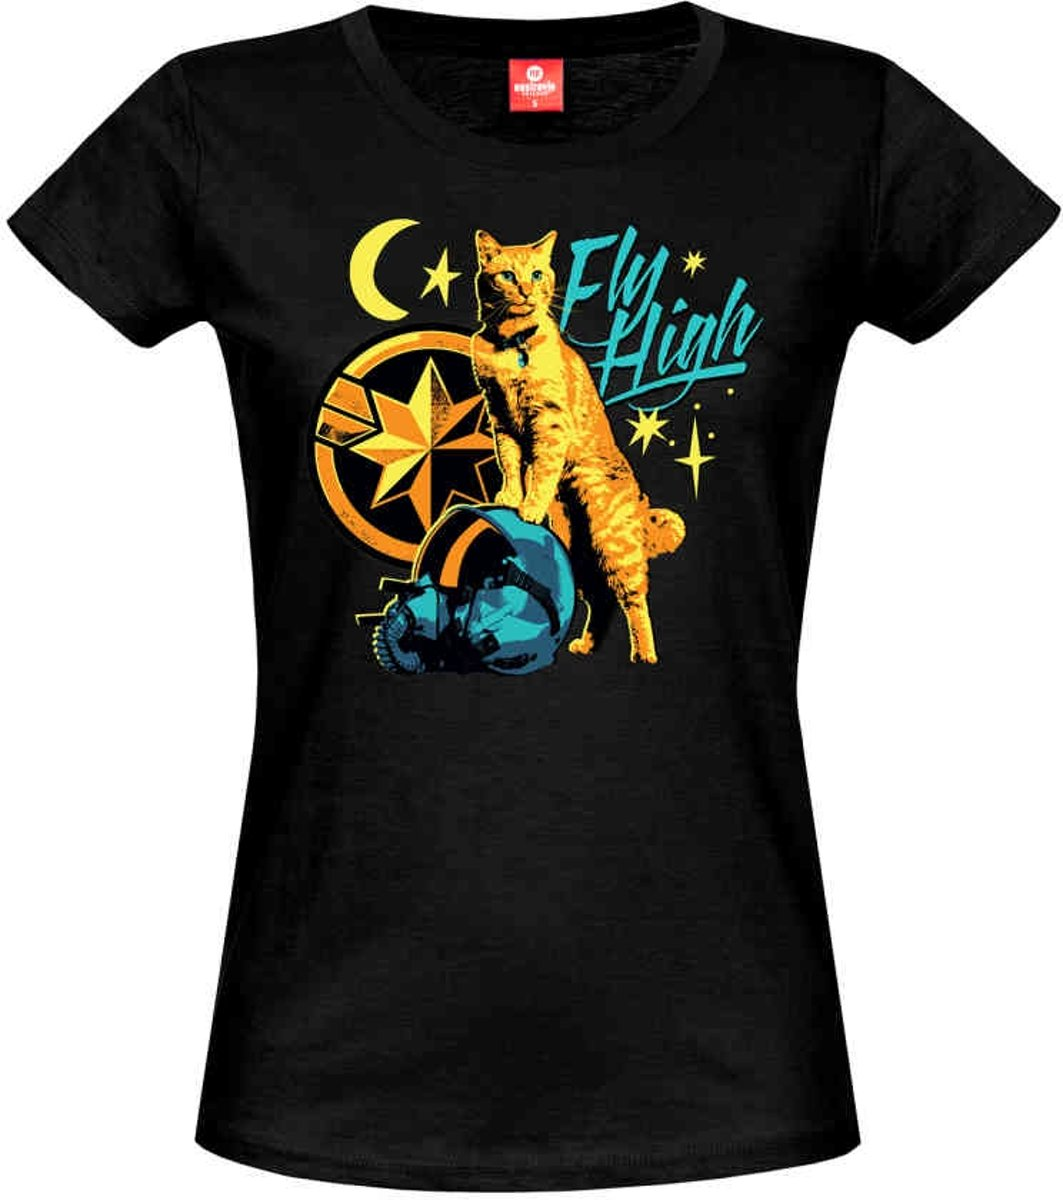 Marvel Captain Marvel Dames Tshirt -S- Flight High Zwart